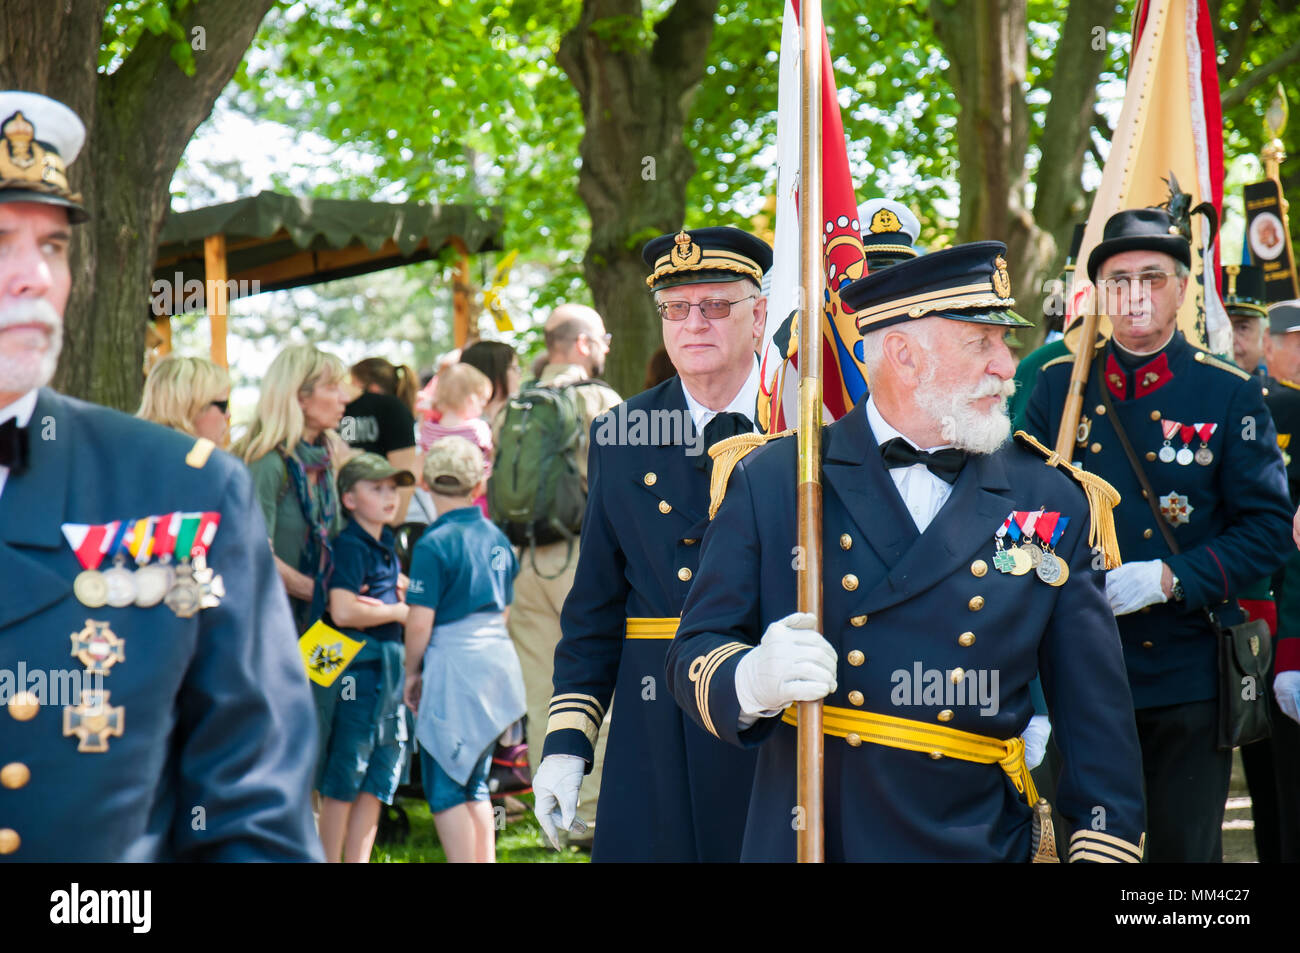 Brandys nL, Czech Republic, April 28, 2018, Audience with Emperor Charles I men in the uniforms of the Austro-Hungarian Army - Stock Image